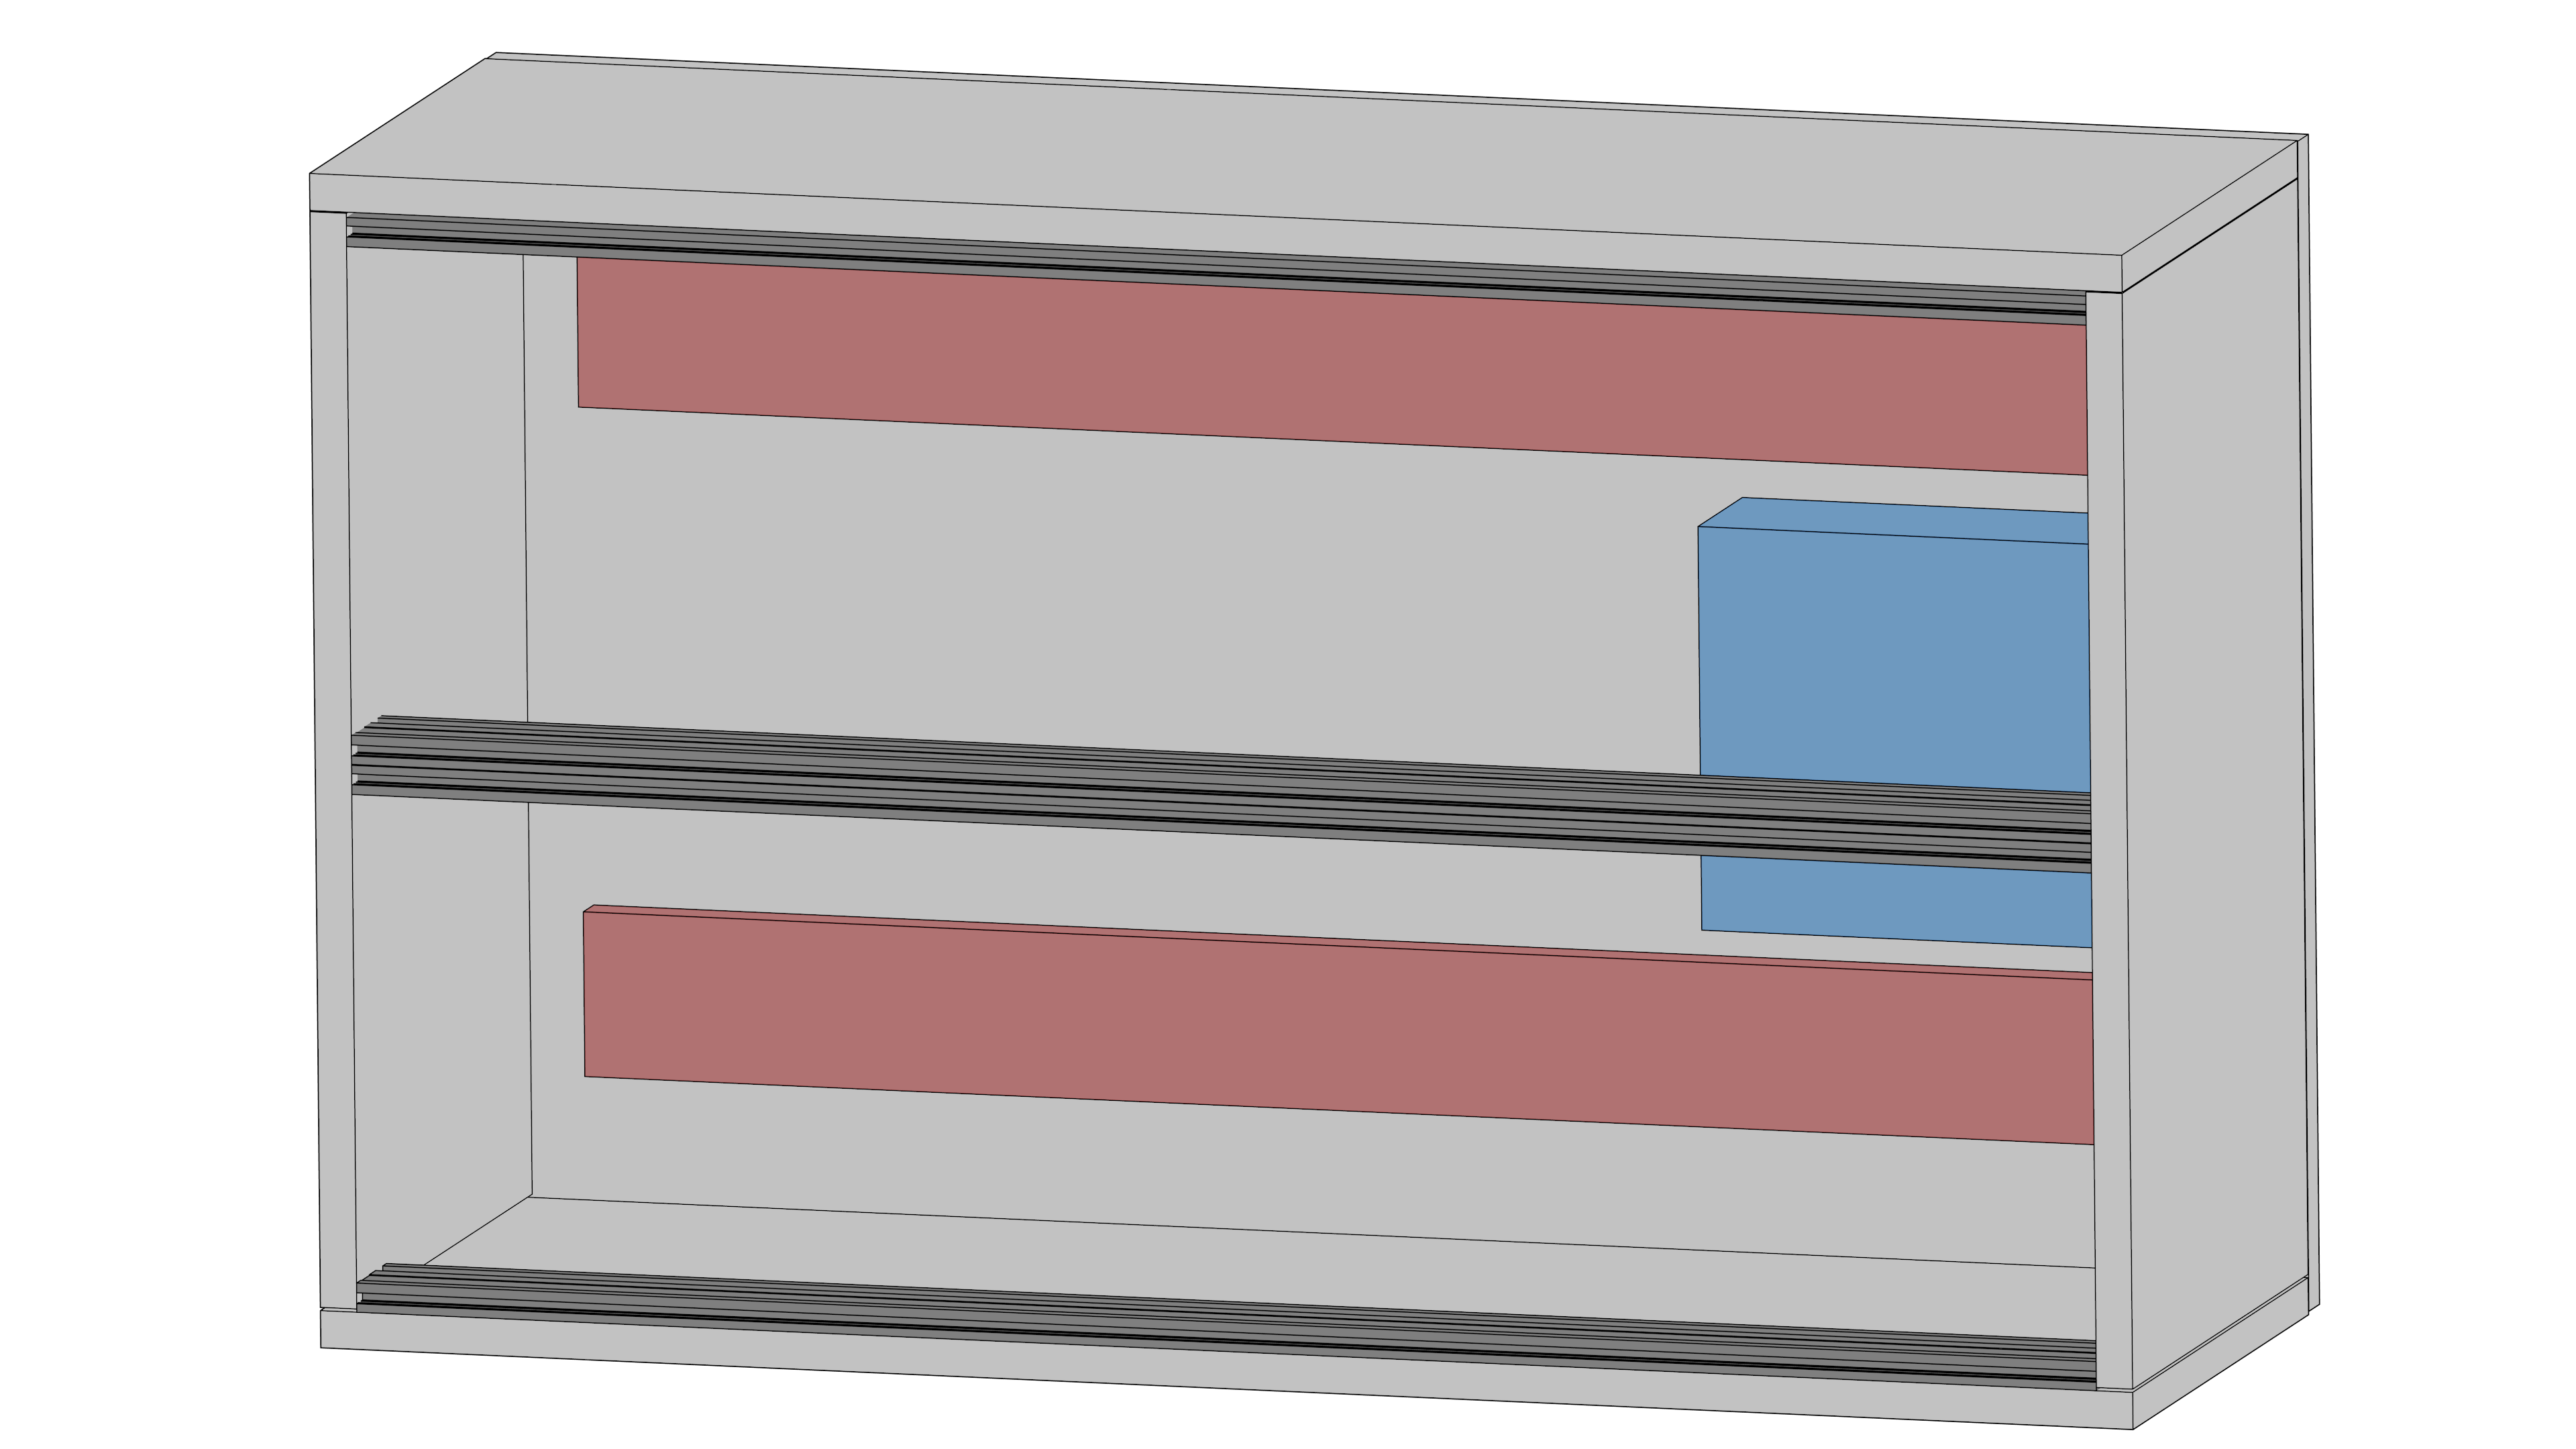 simplecase/simplecase_two_rows.png